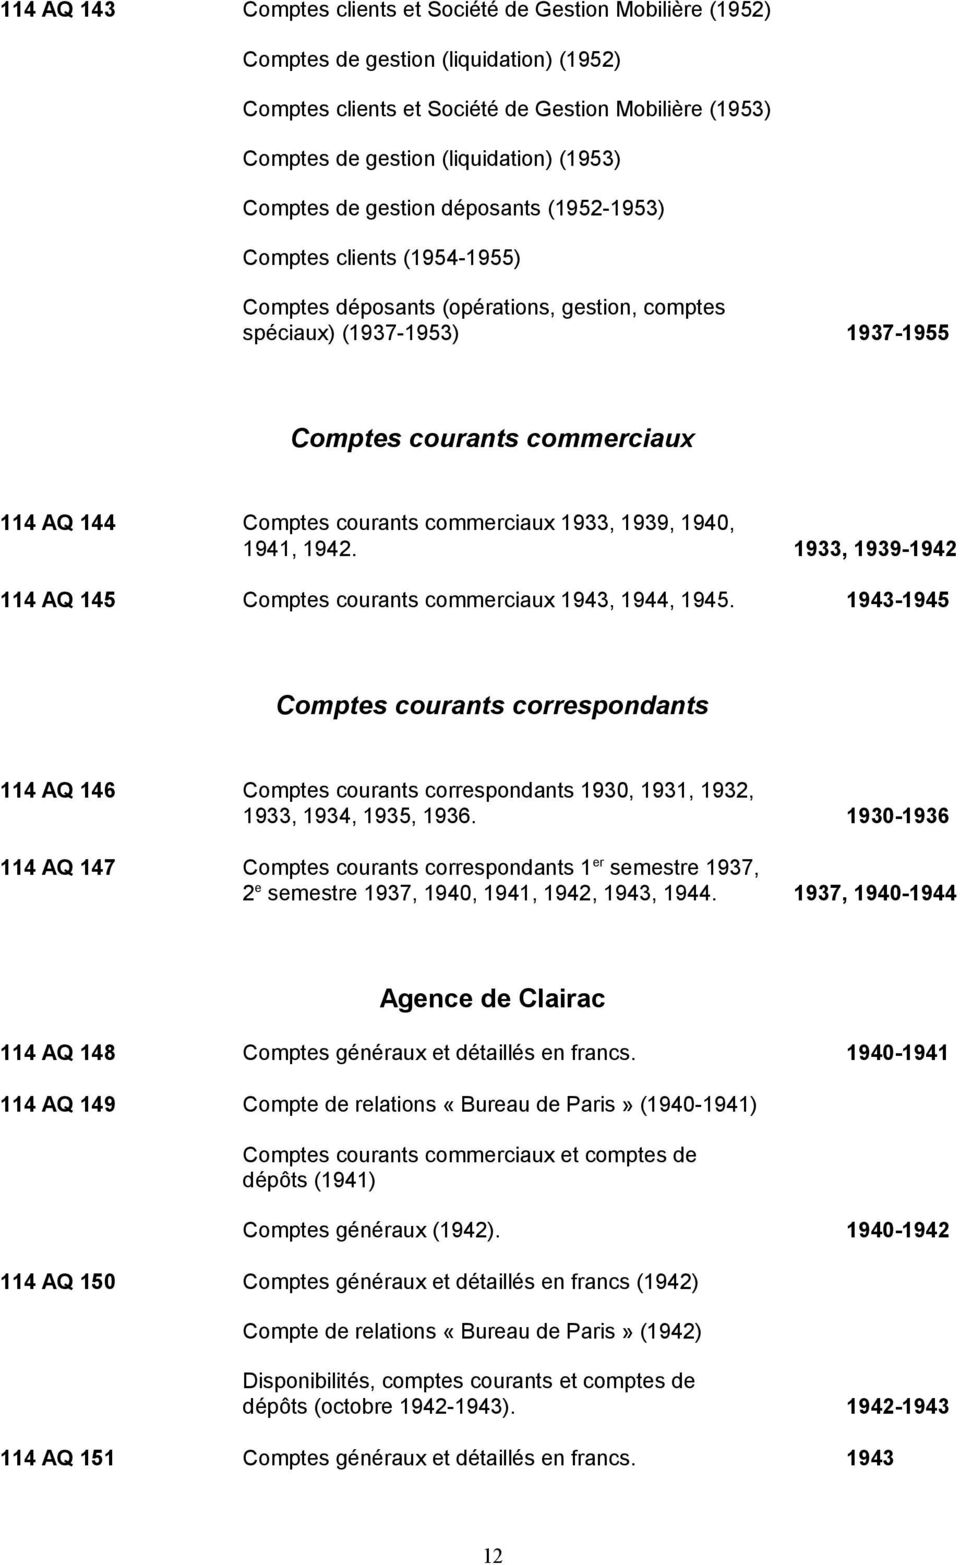 Comptes courants commerciaux 1933, 1939, 1940, 1941, 1942. 1933, 1939-1942 114 AQ 145 Comptes courants commerciaux 1943, 1944, 1945.